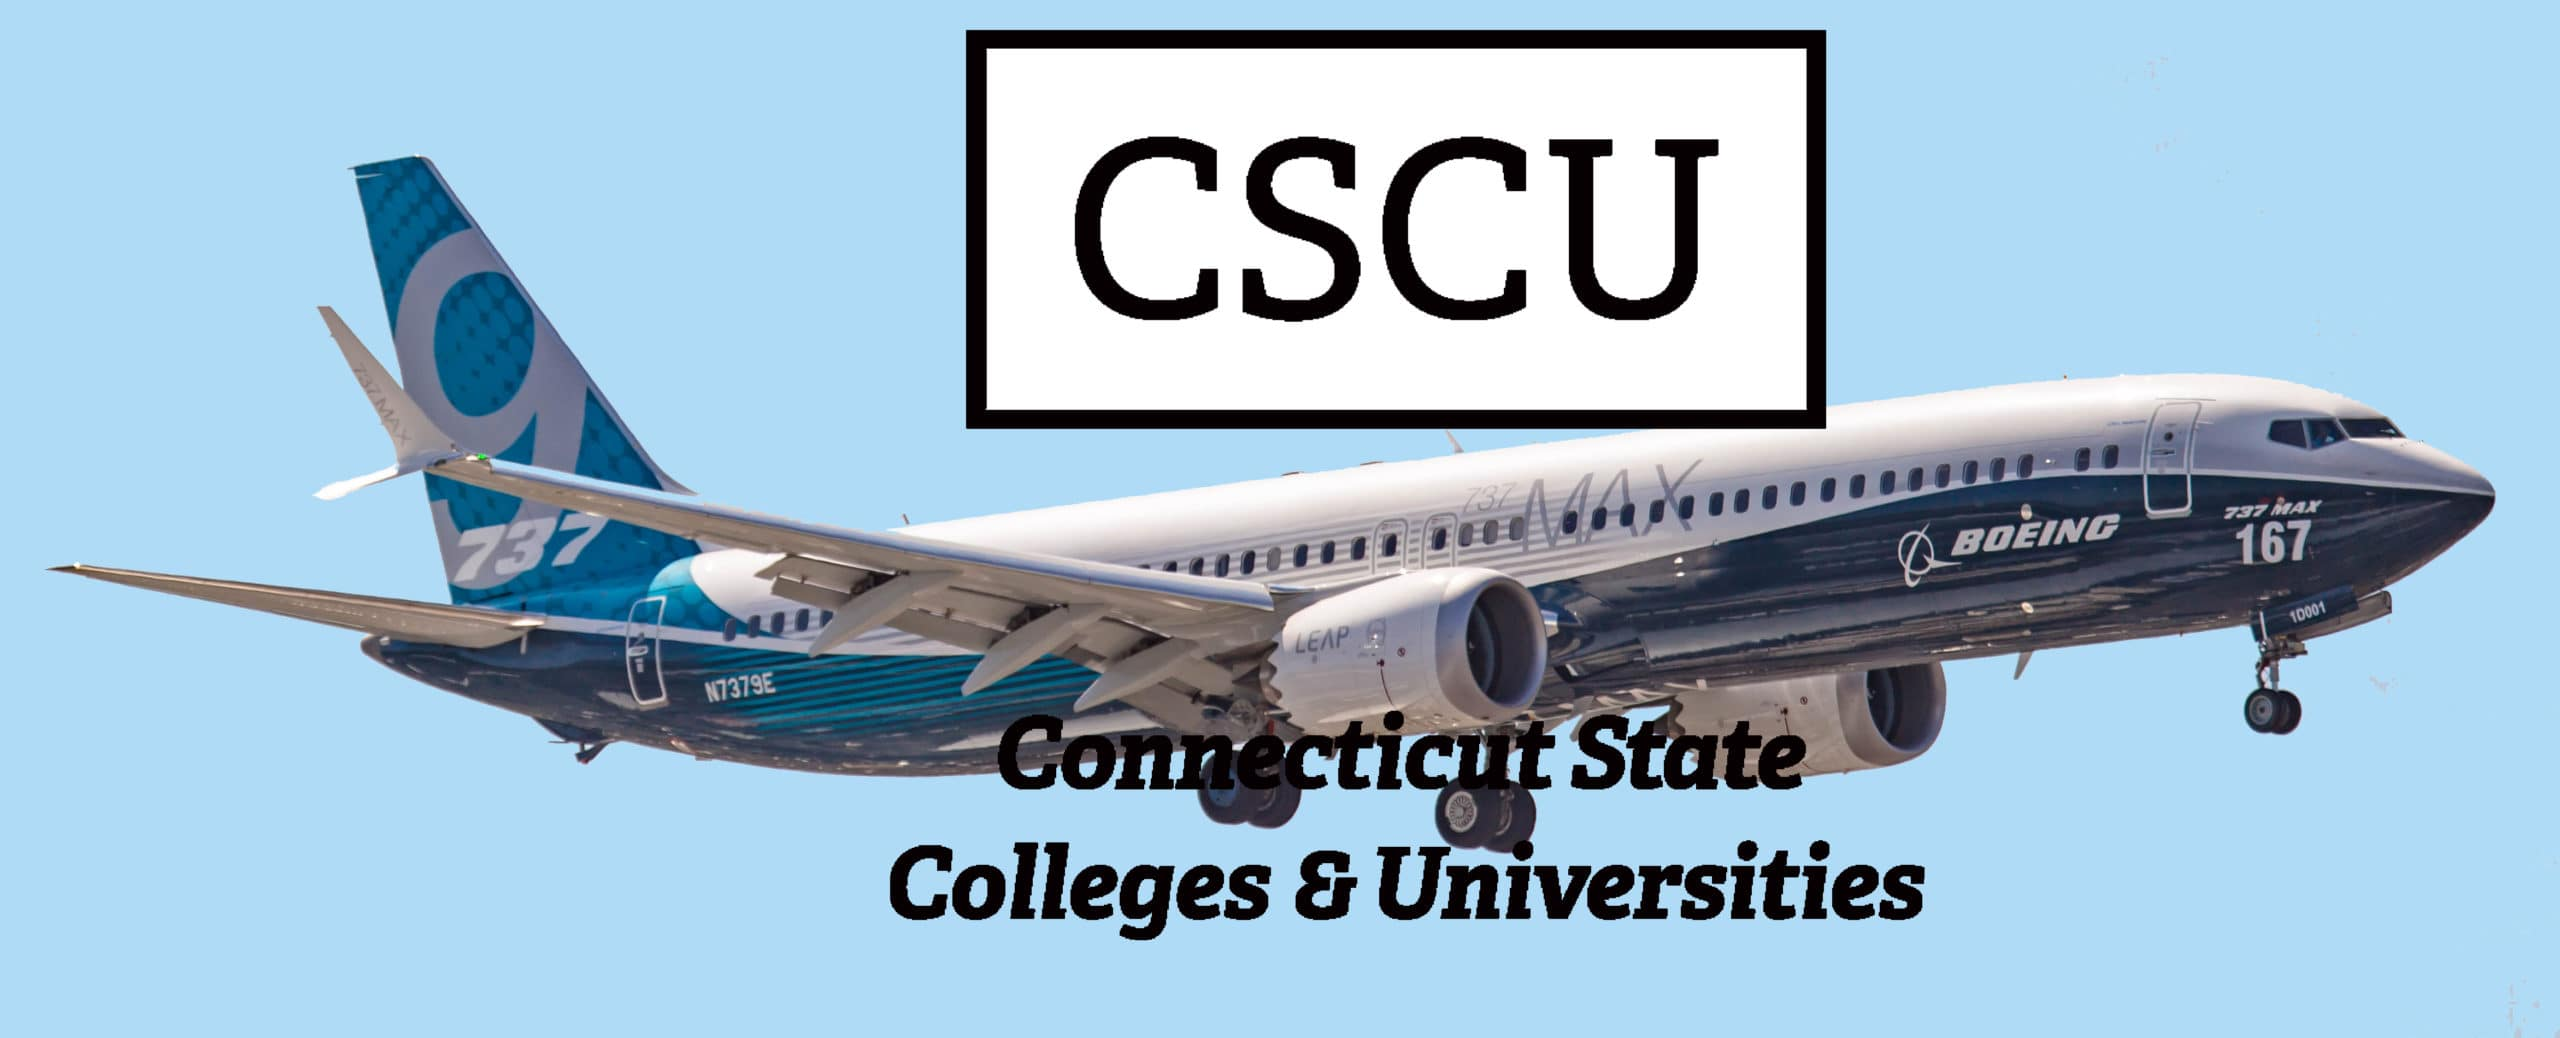 The 737 Max and the CSCU Board of Regents